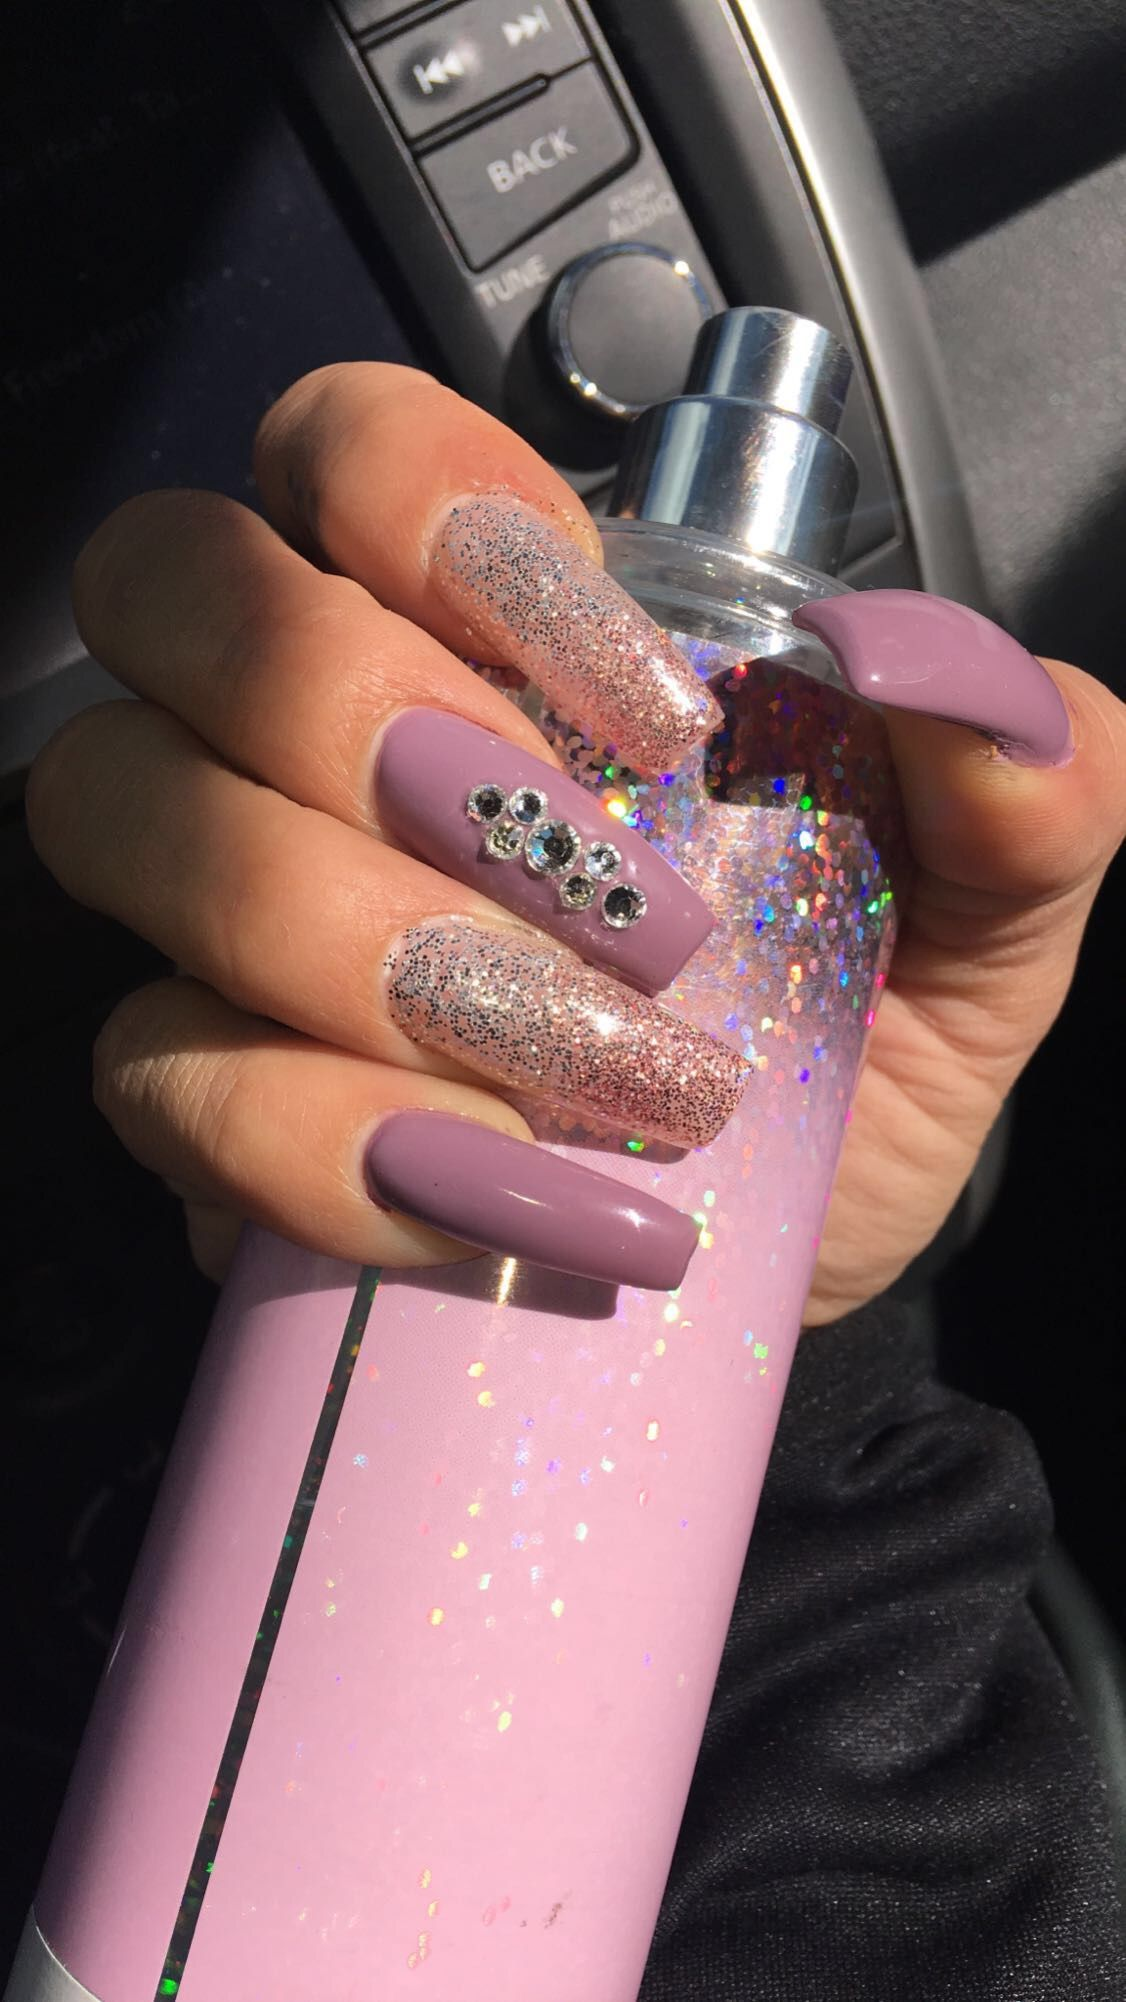 Follow Me For More Bomb Pins Like This One Onlyonejas Beautiful Nails Classy Nails Nail Designs